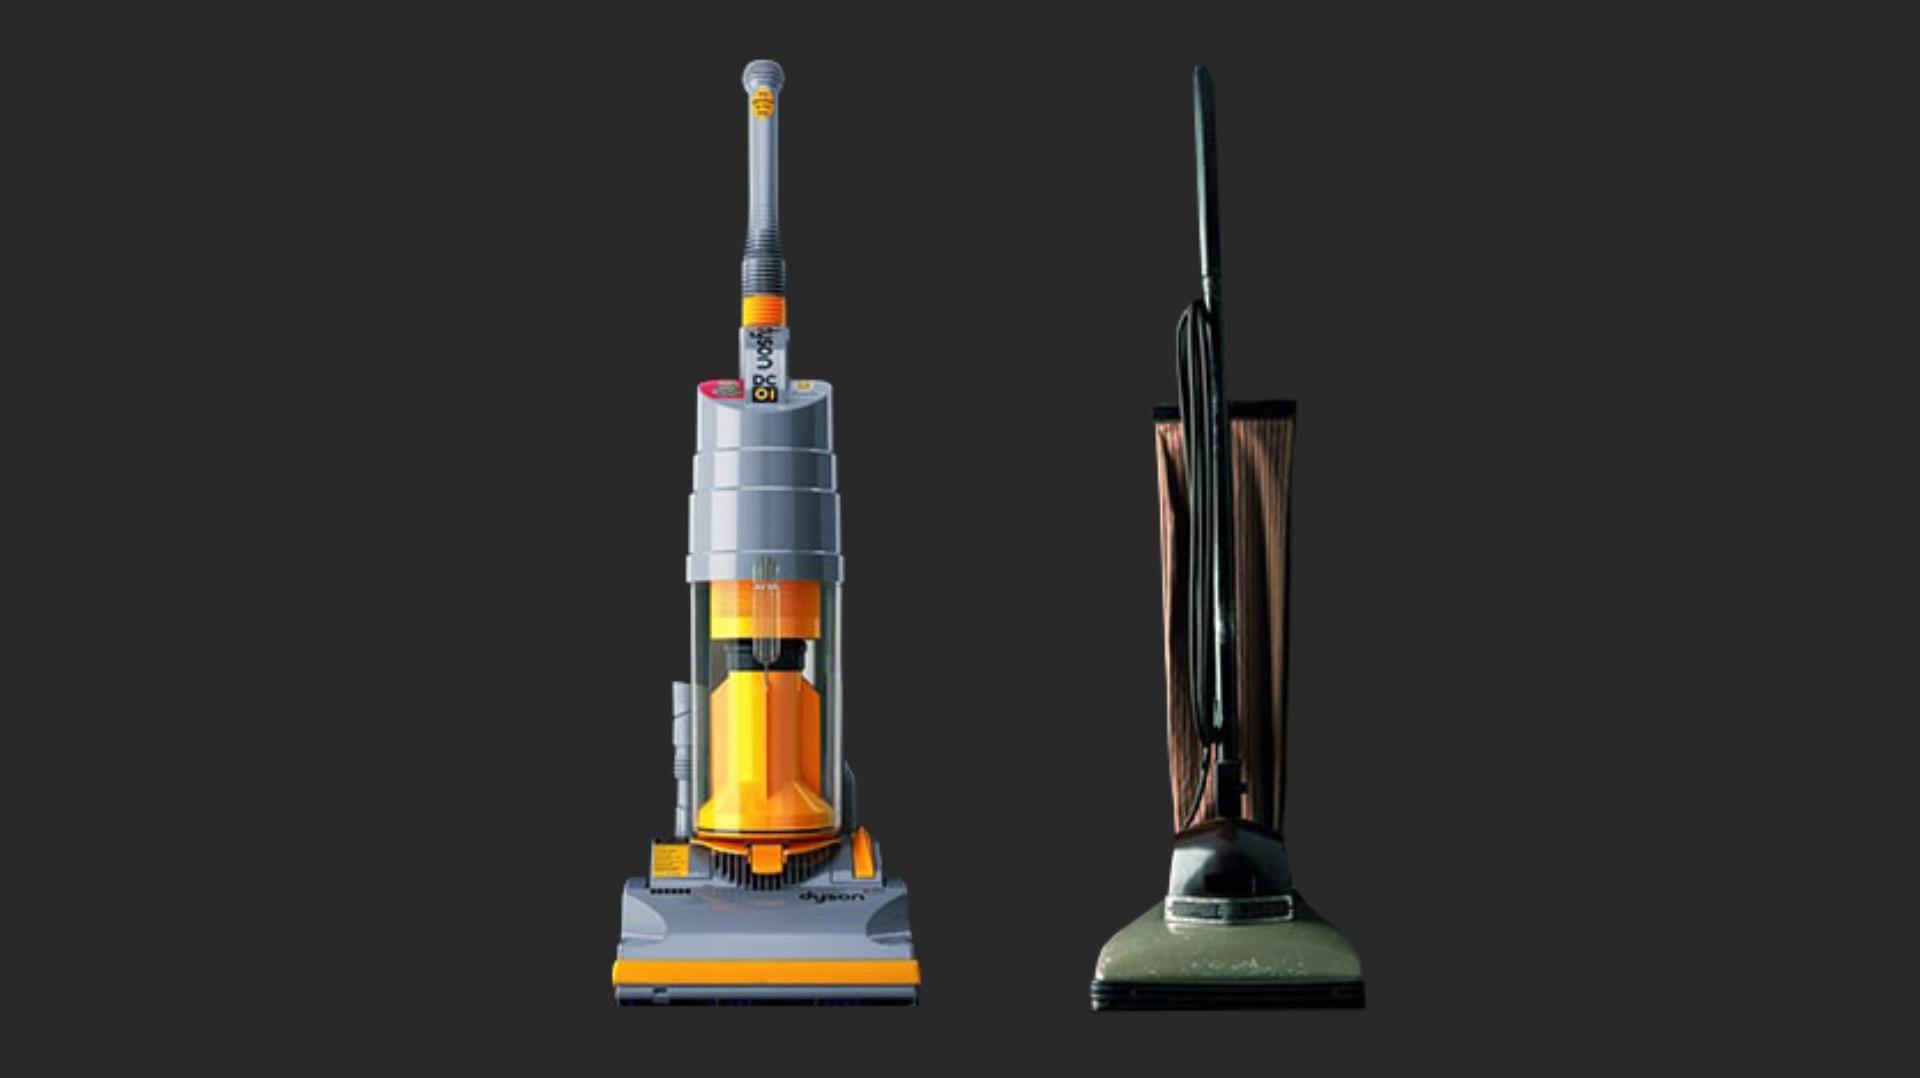 DC01 and a competitor model of vacuum machine